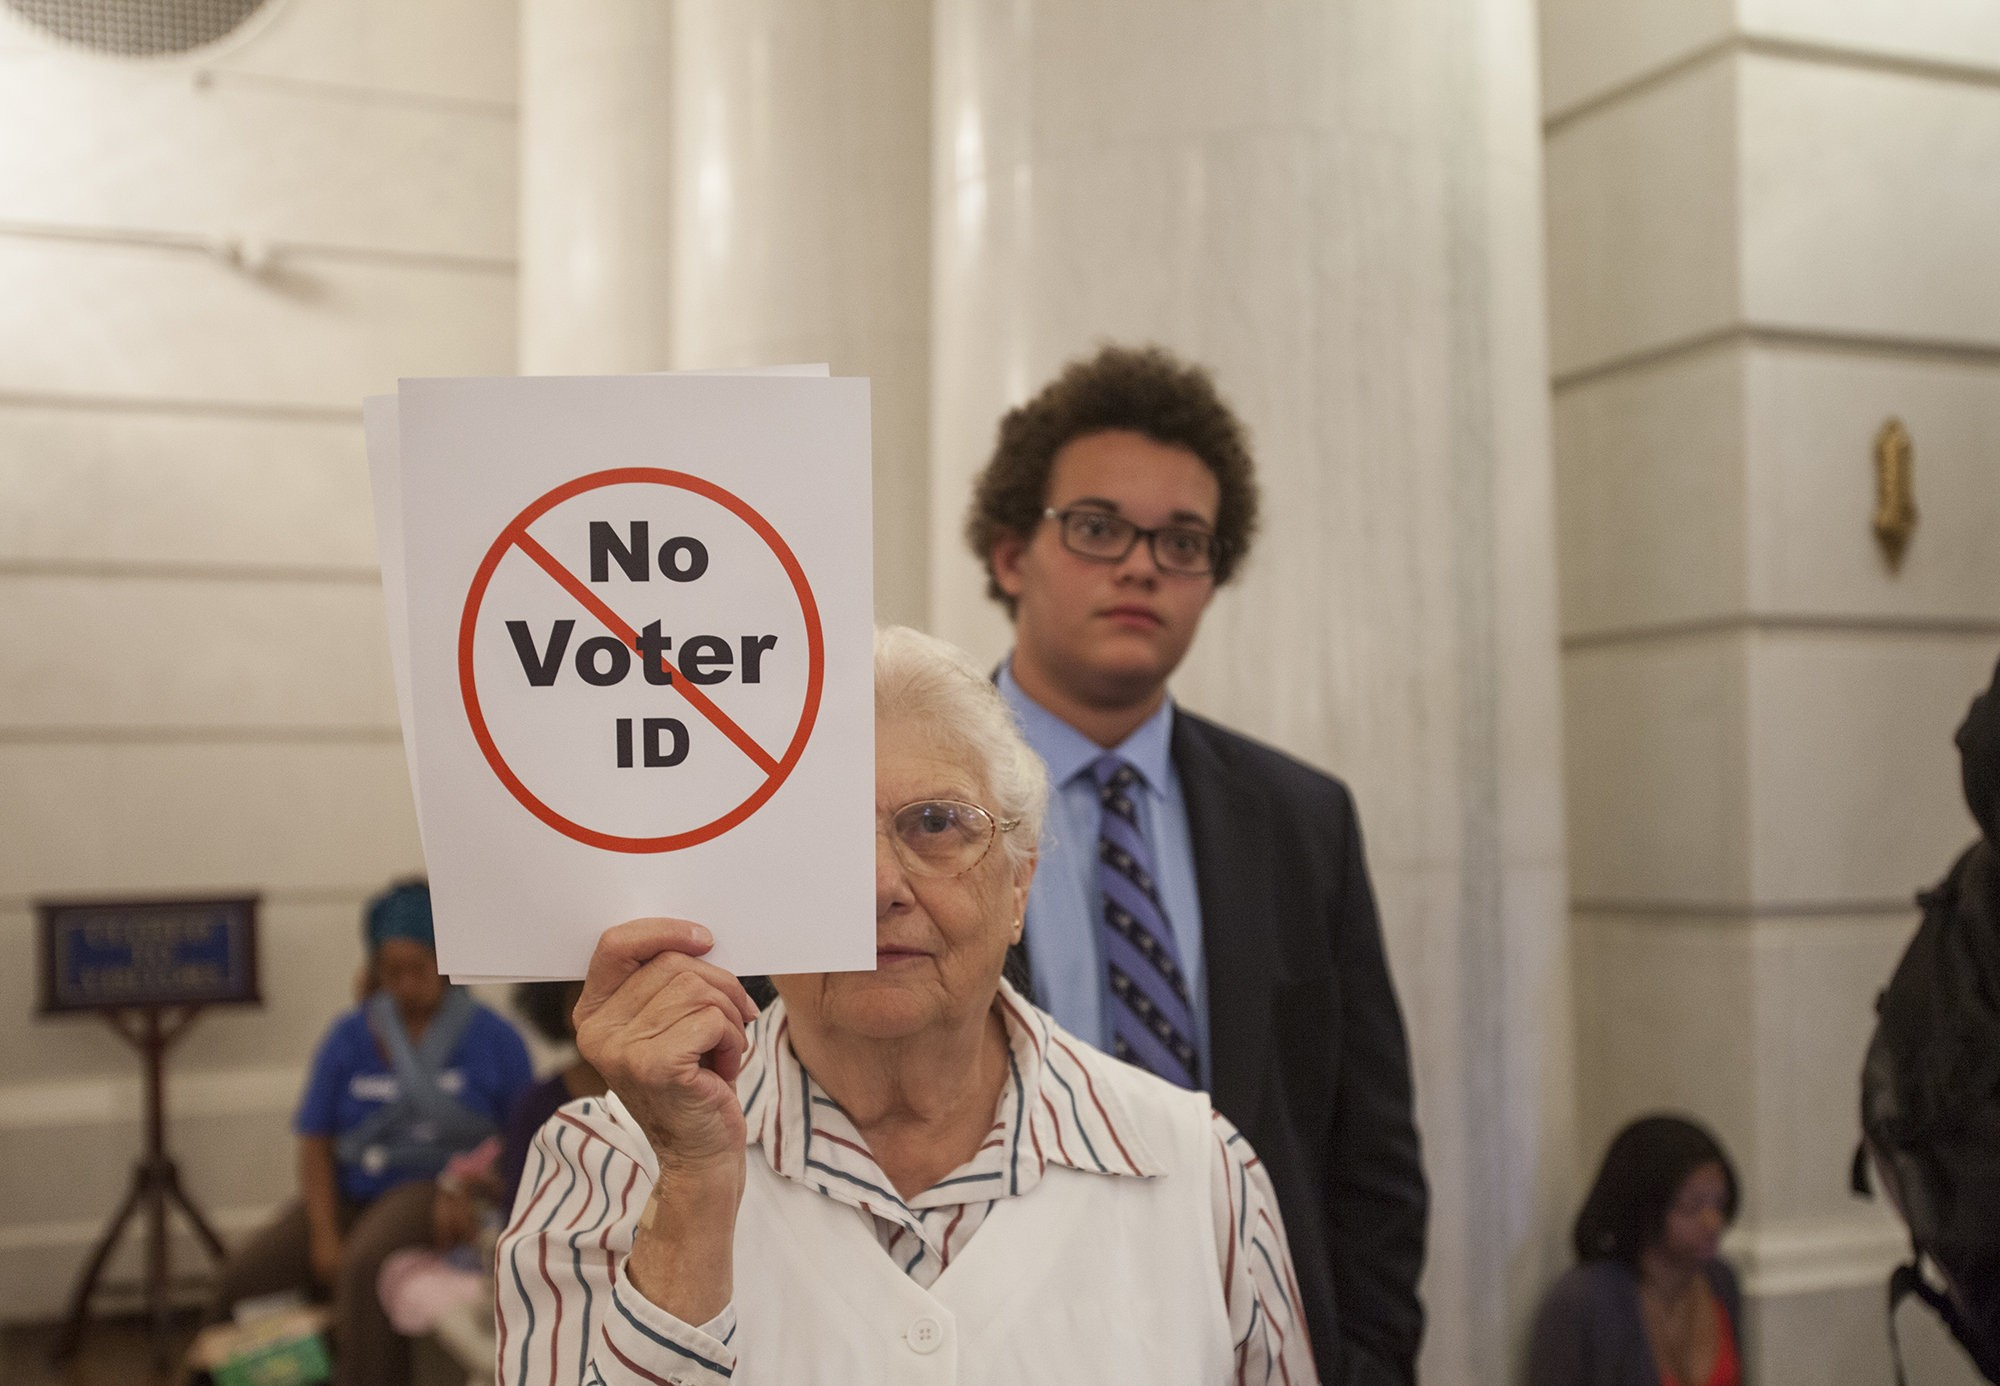 Abigail Newburger of Newburg participated in a rally calling for the repeal of the state's voter ID law at the state Capitol earlier this month.